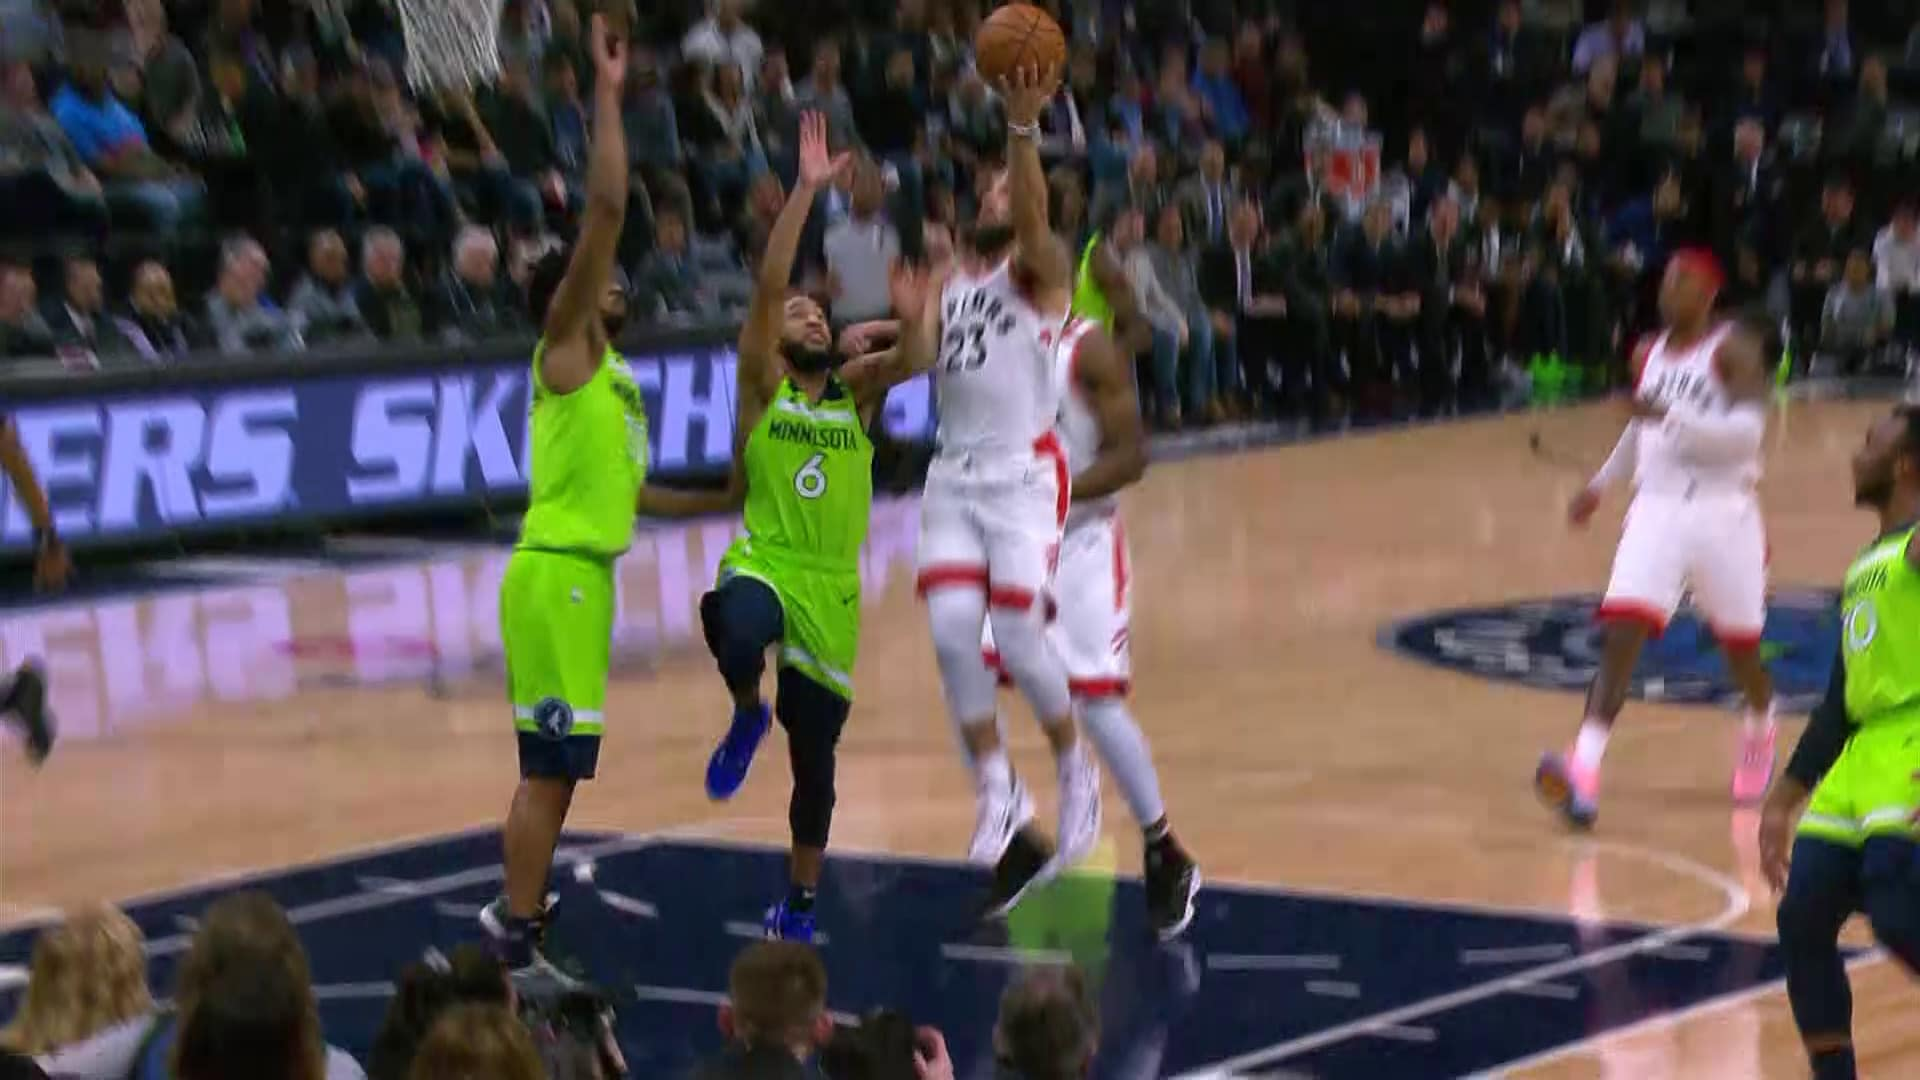 Raptors Highlights: VanVleet Layup - January 18, 2020